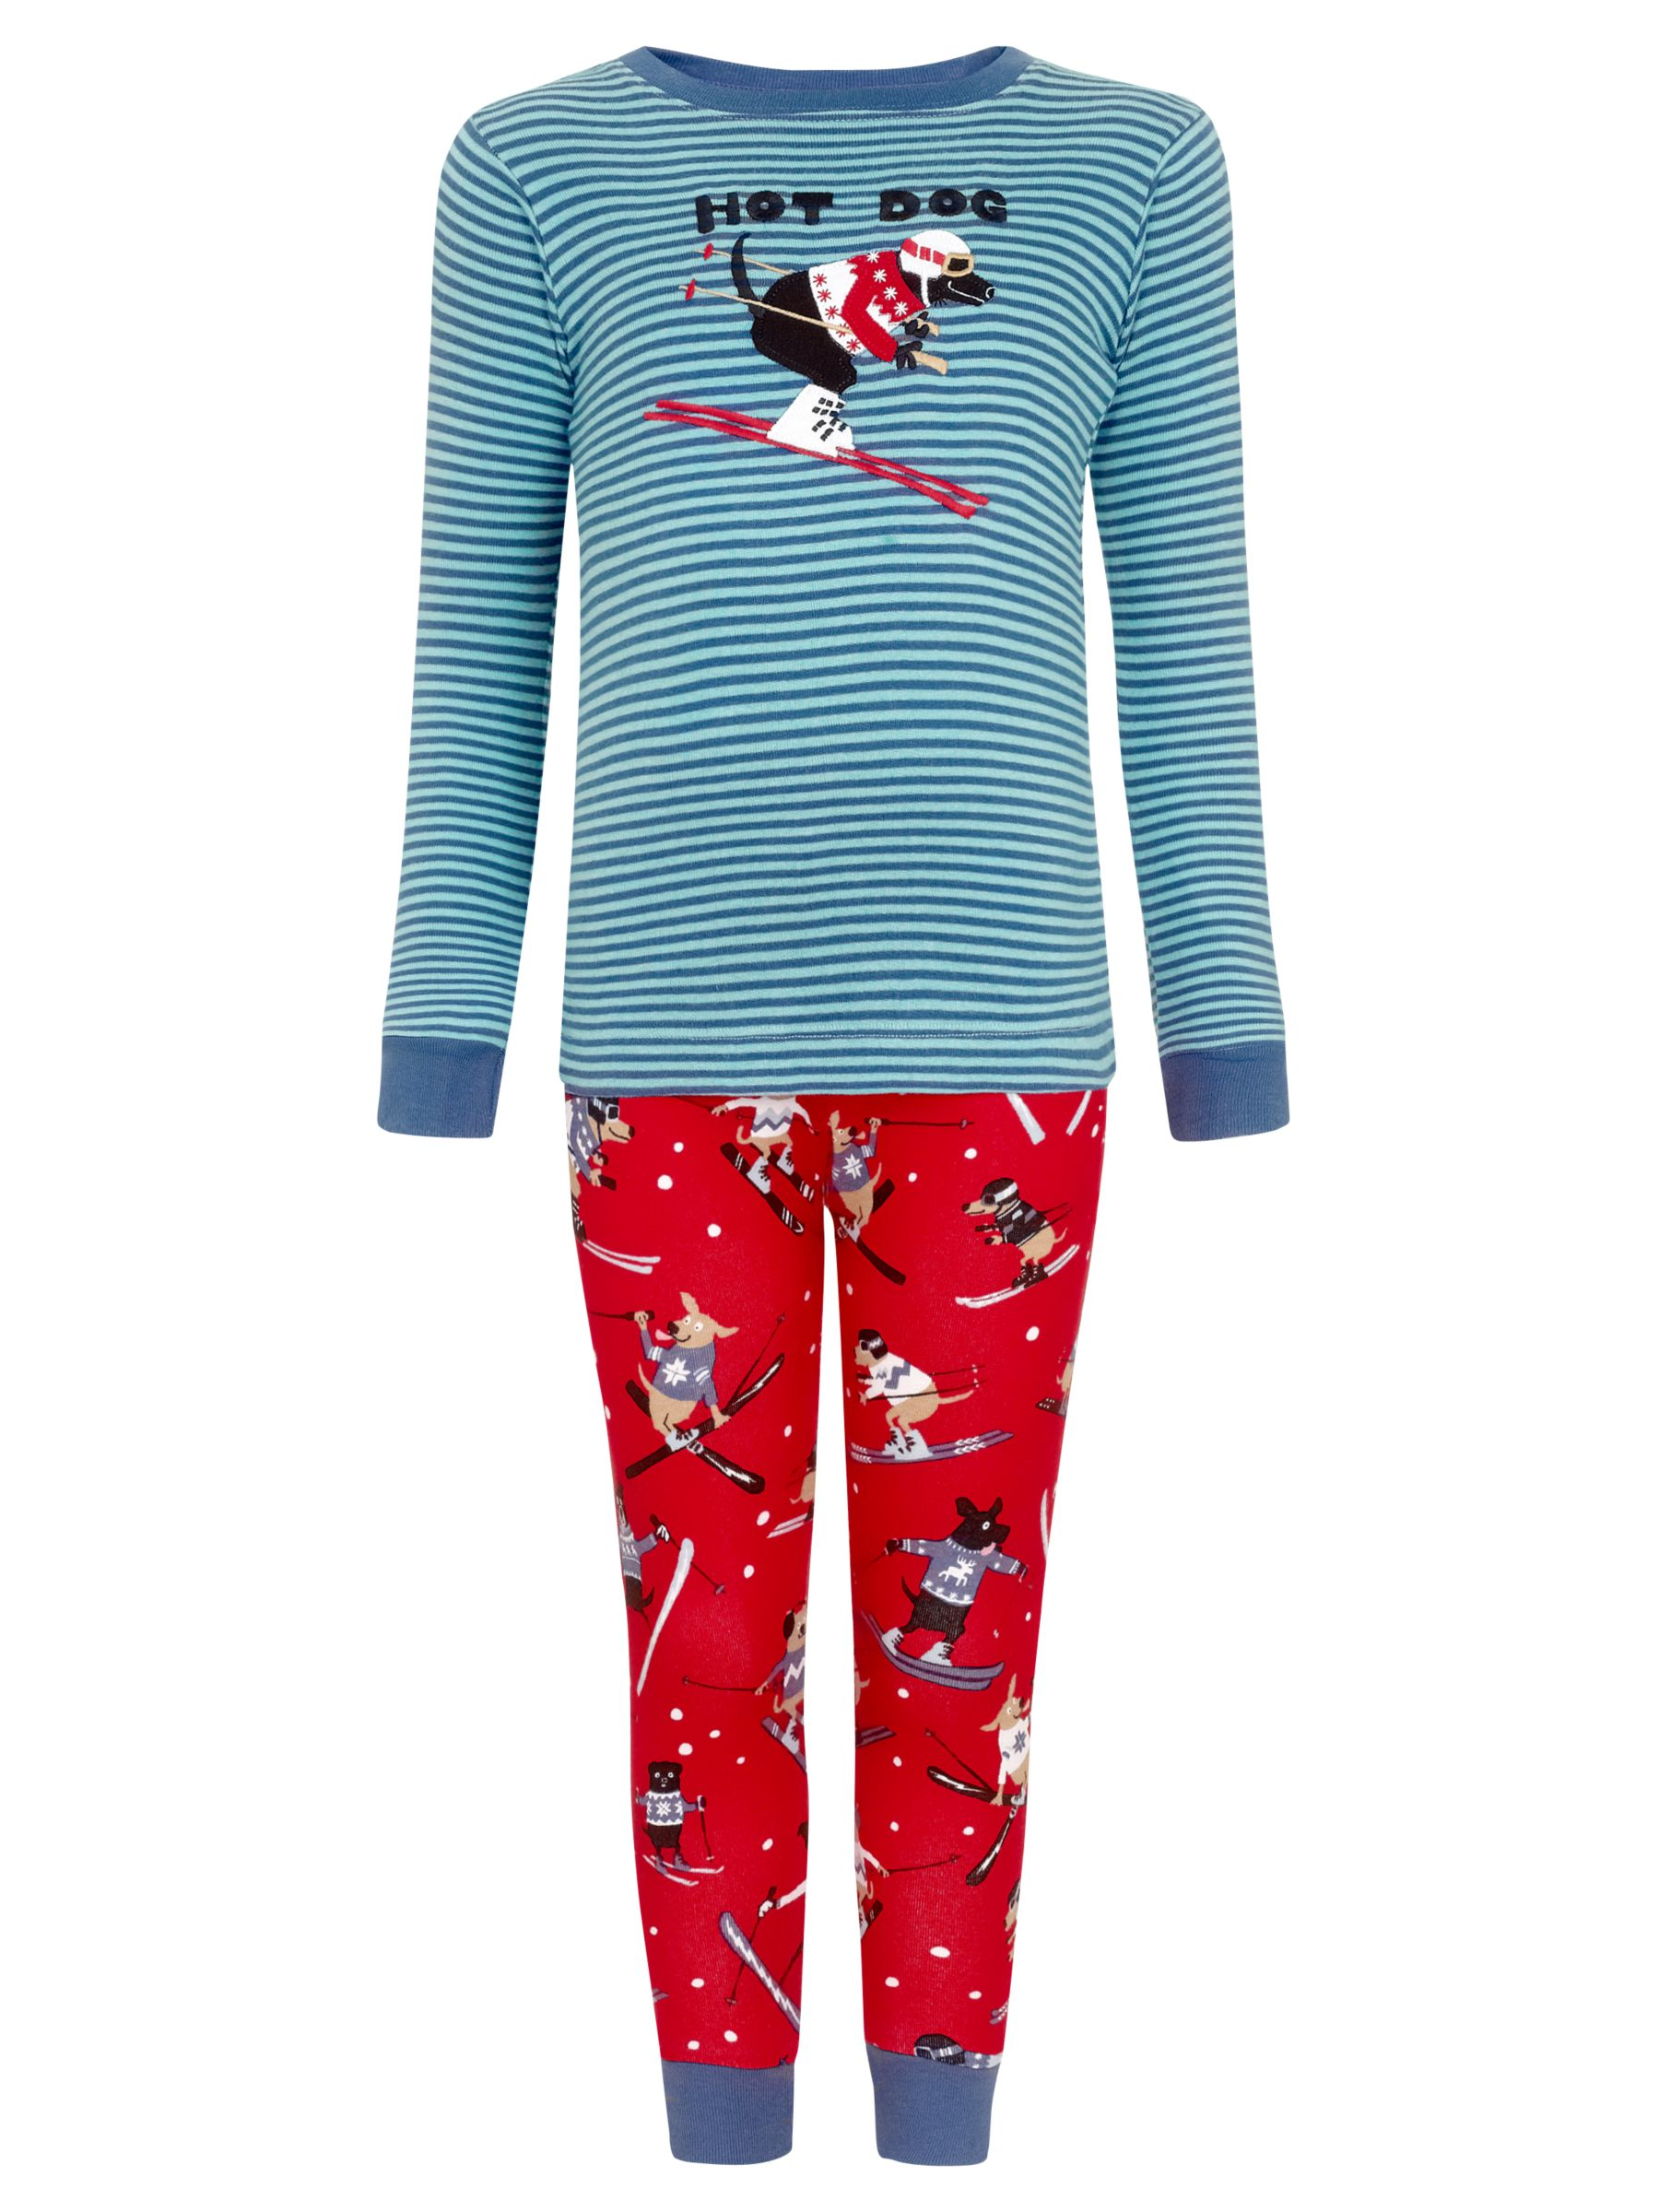 Hatley Boys' Hot Dog Skiing Print Pyjamas, Red/Blue